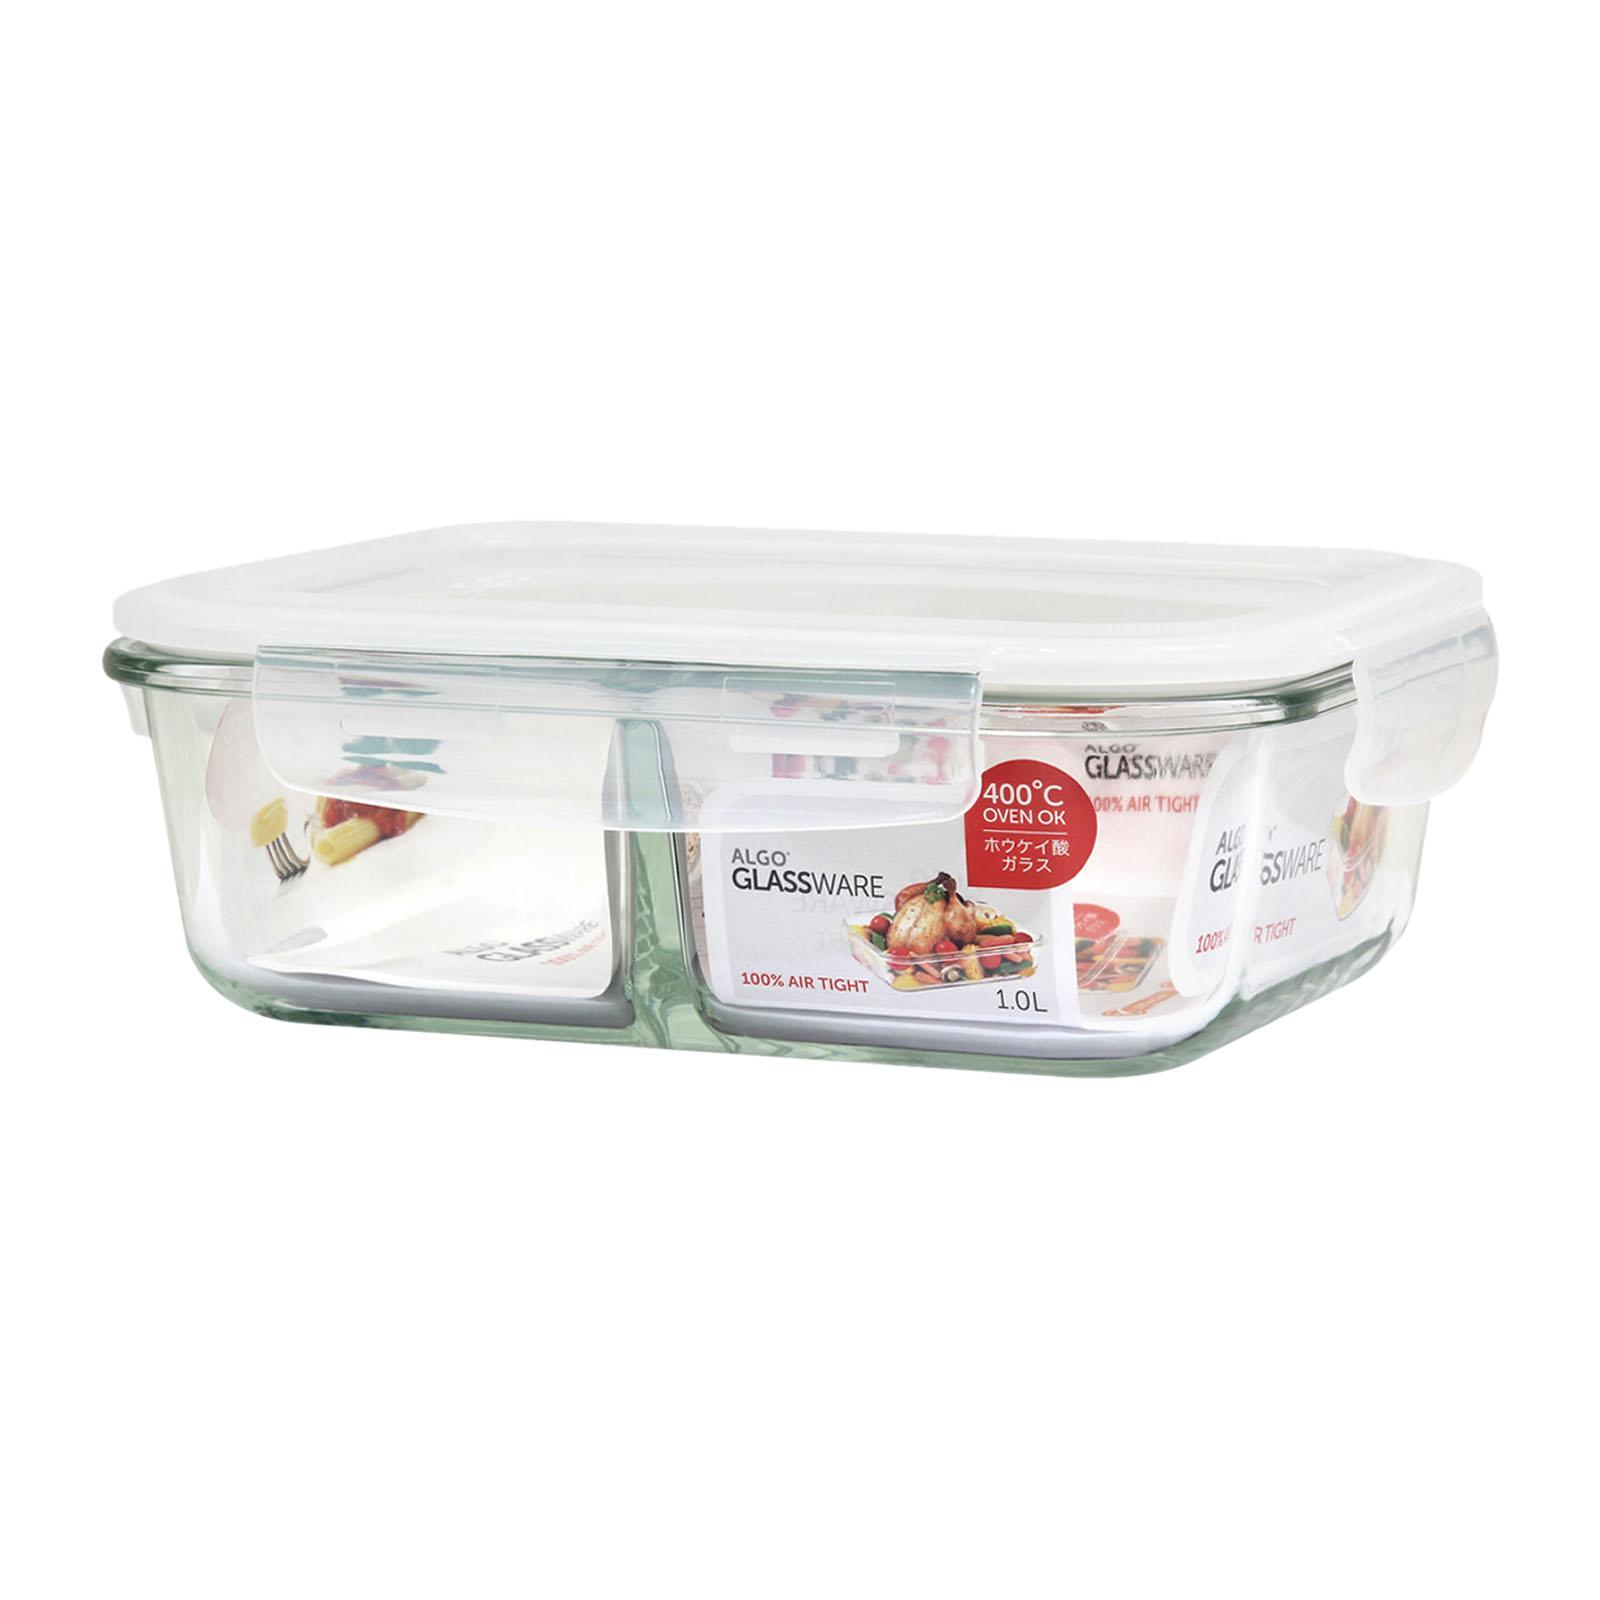 Algo Glass Container with Divider 1000ML Rectangular